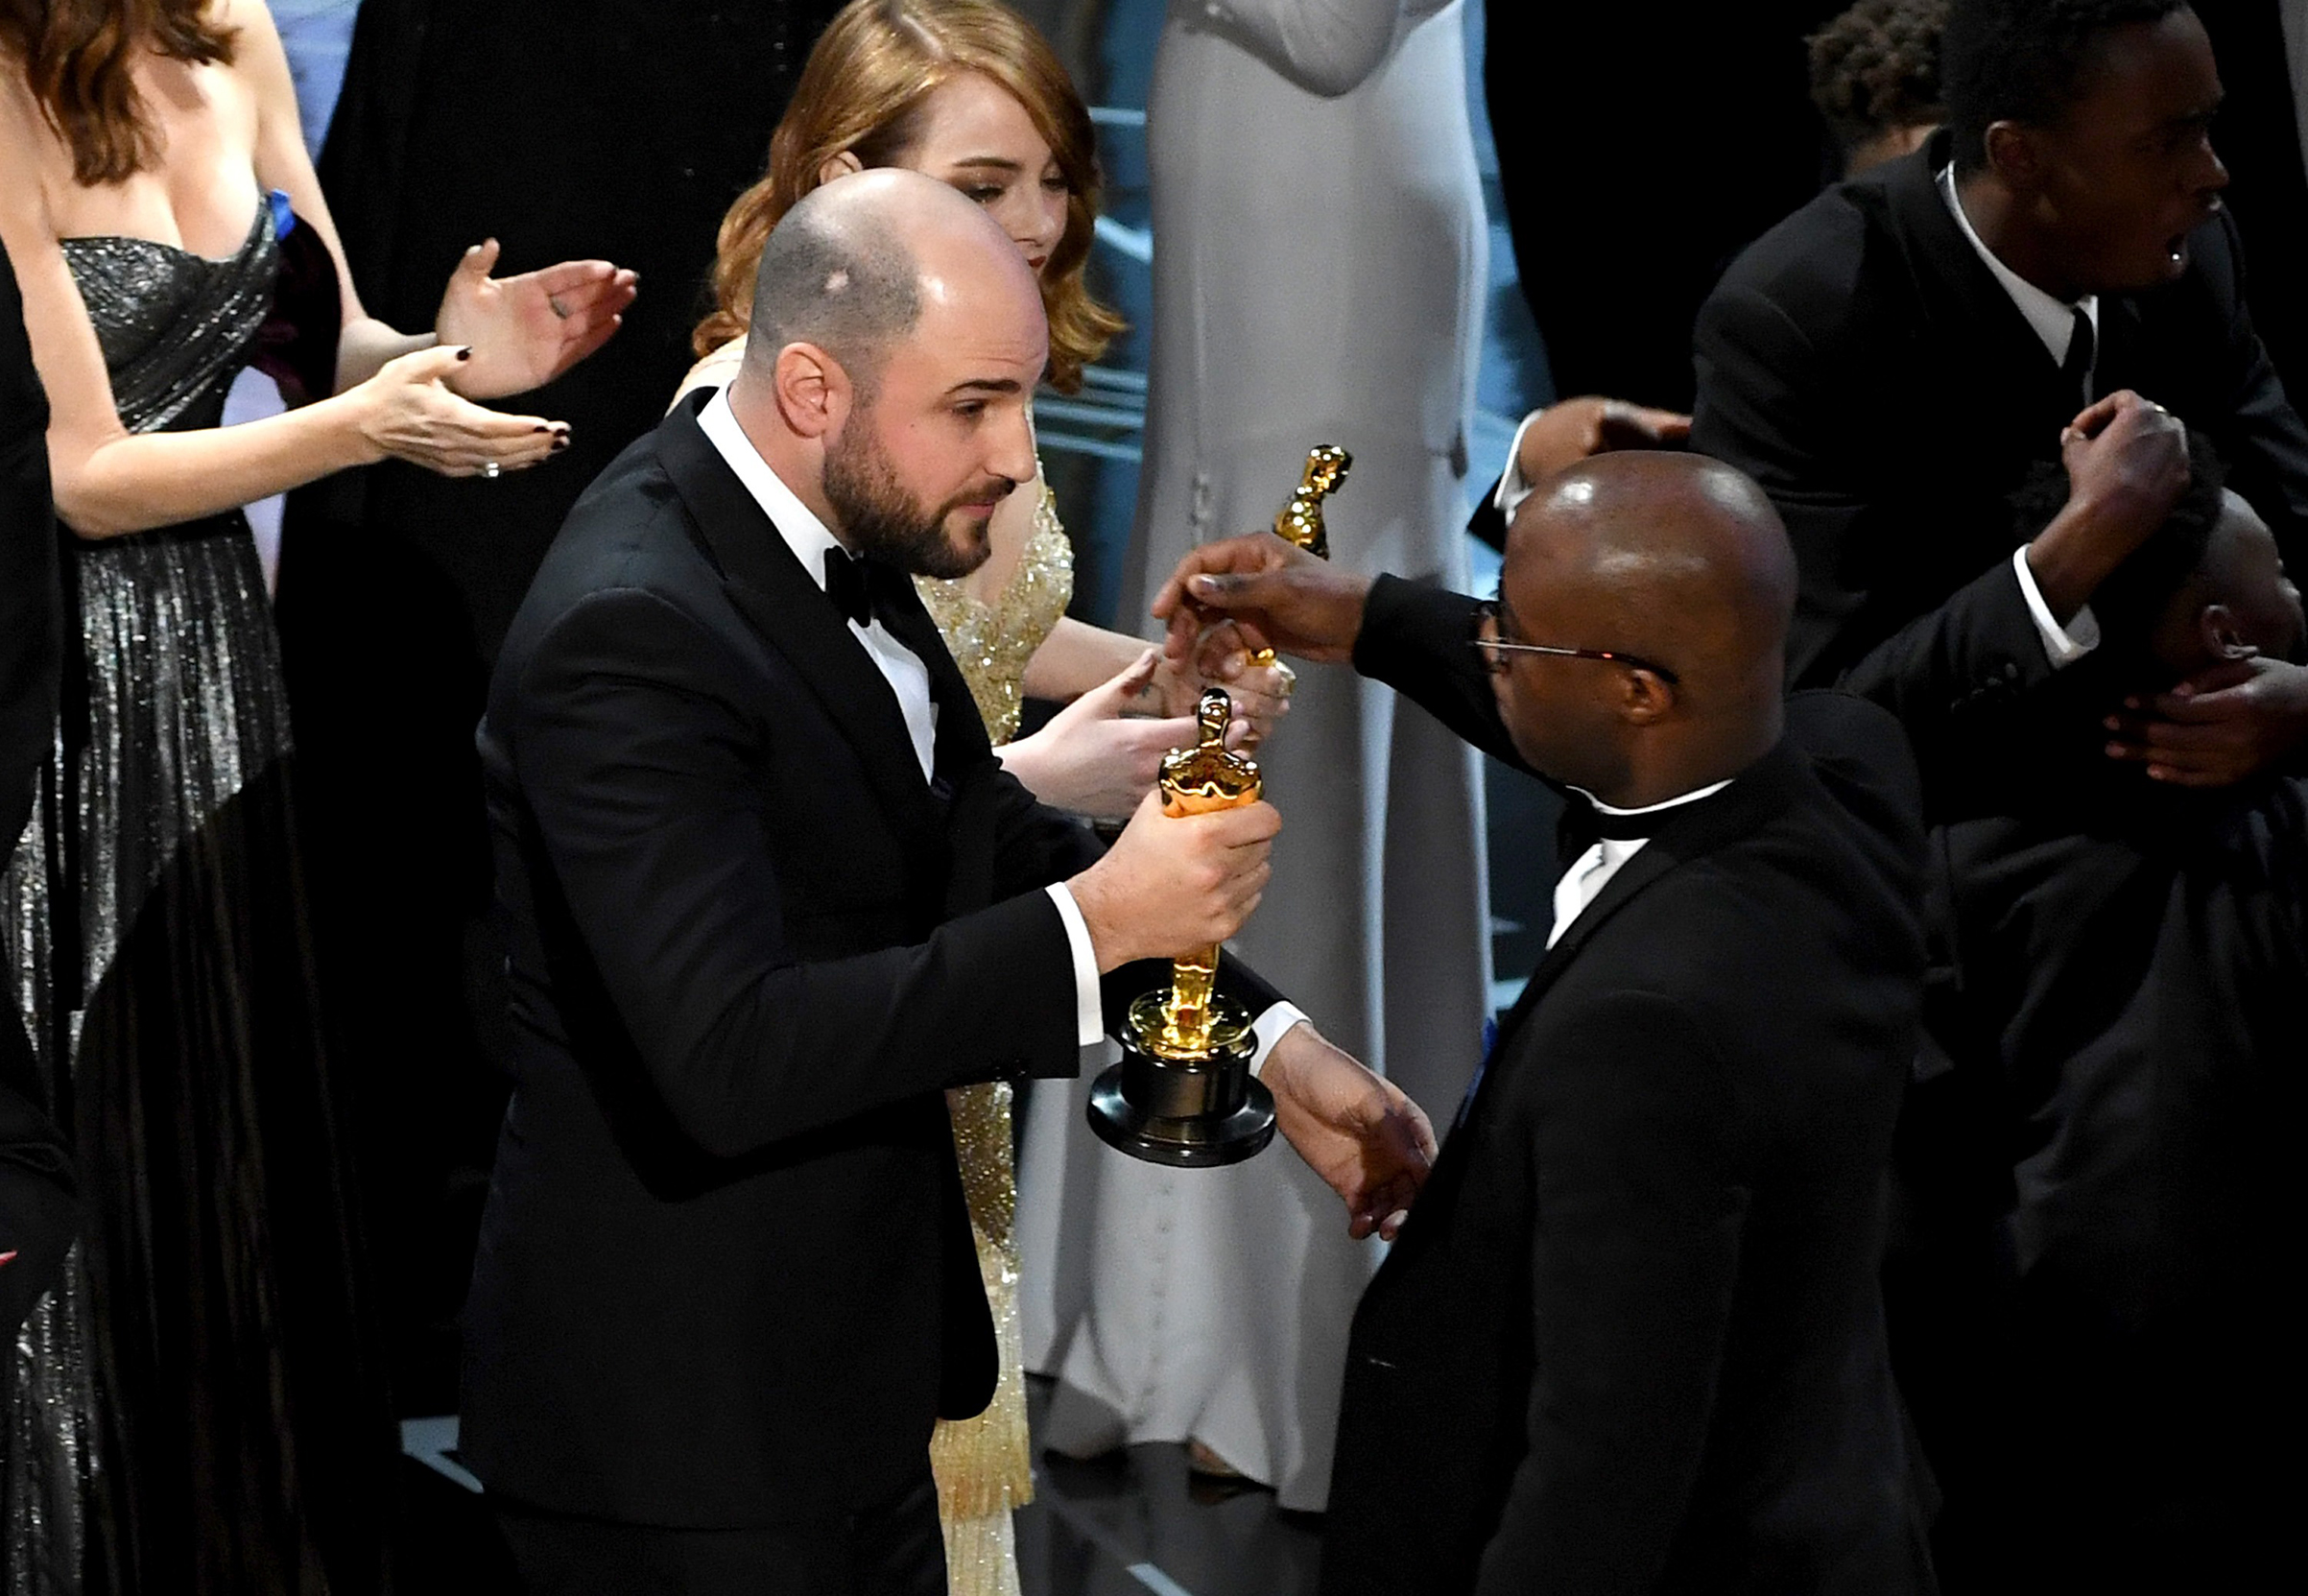 La La Land producer Jordan Horowitz hands a stunned Jenkins the Best Picture statue at the 2017 Oscars